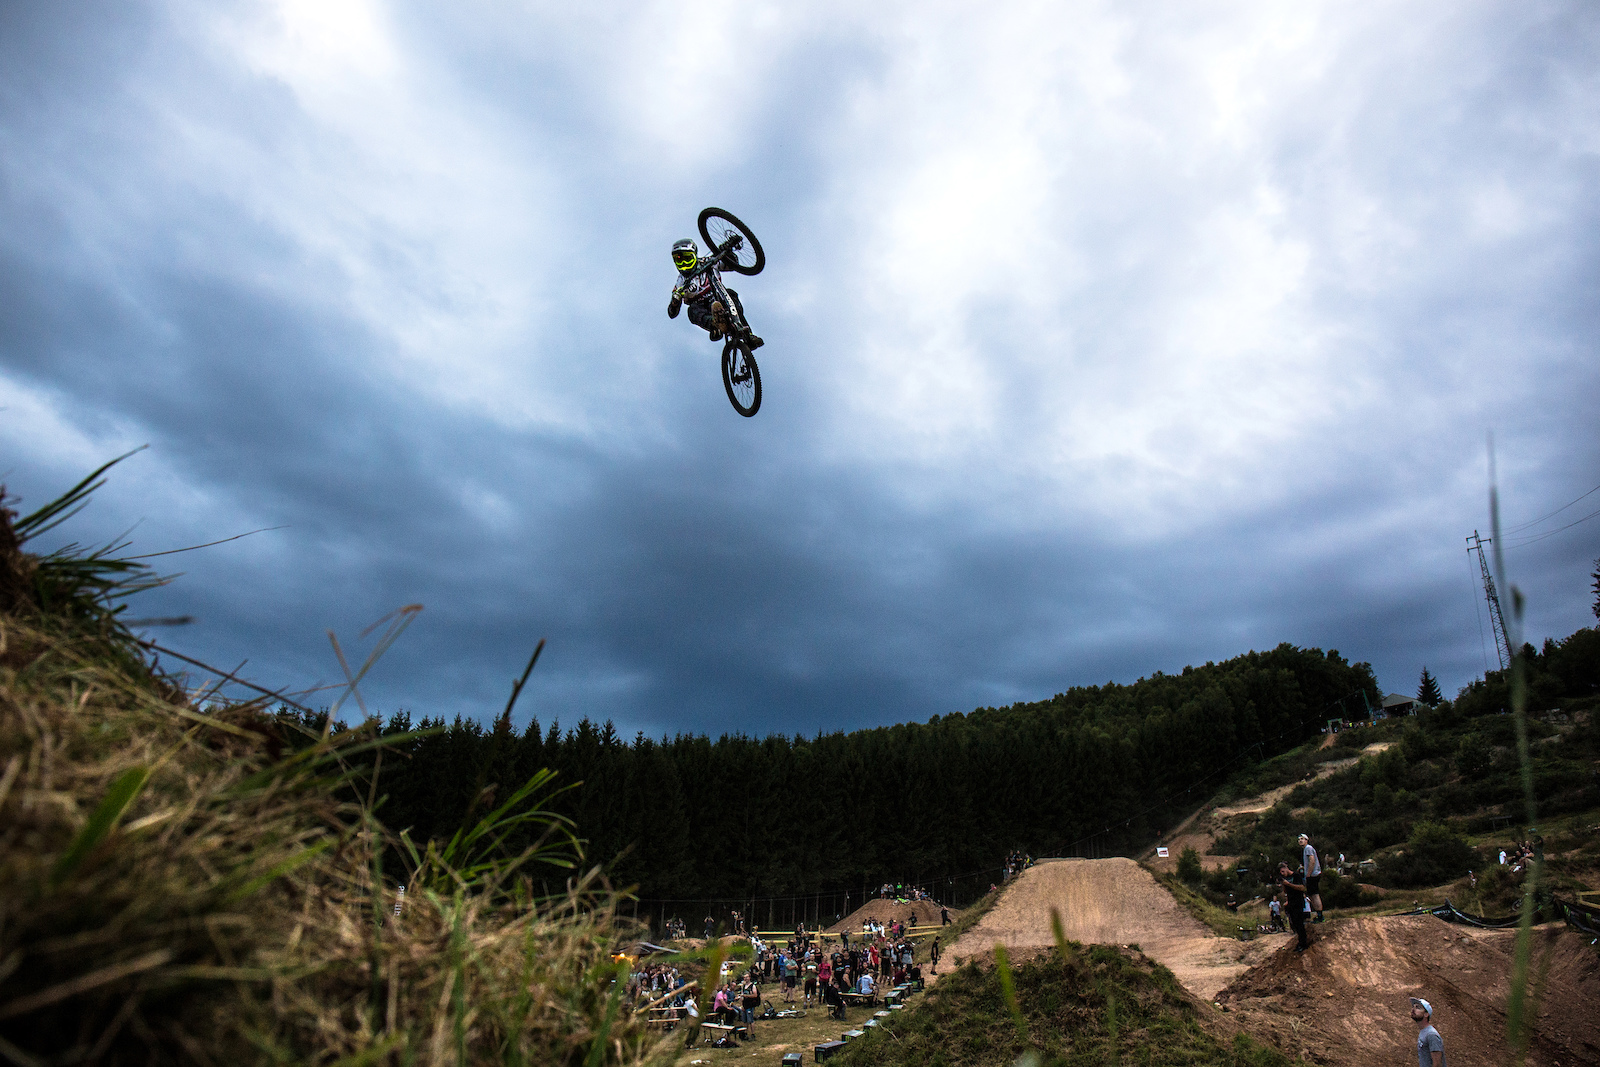 Sam Reynolds turned up at Loosefest in more ways than one!